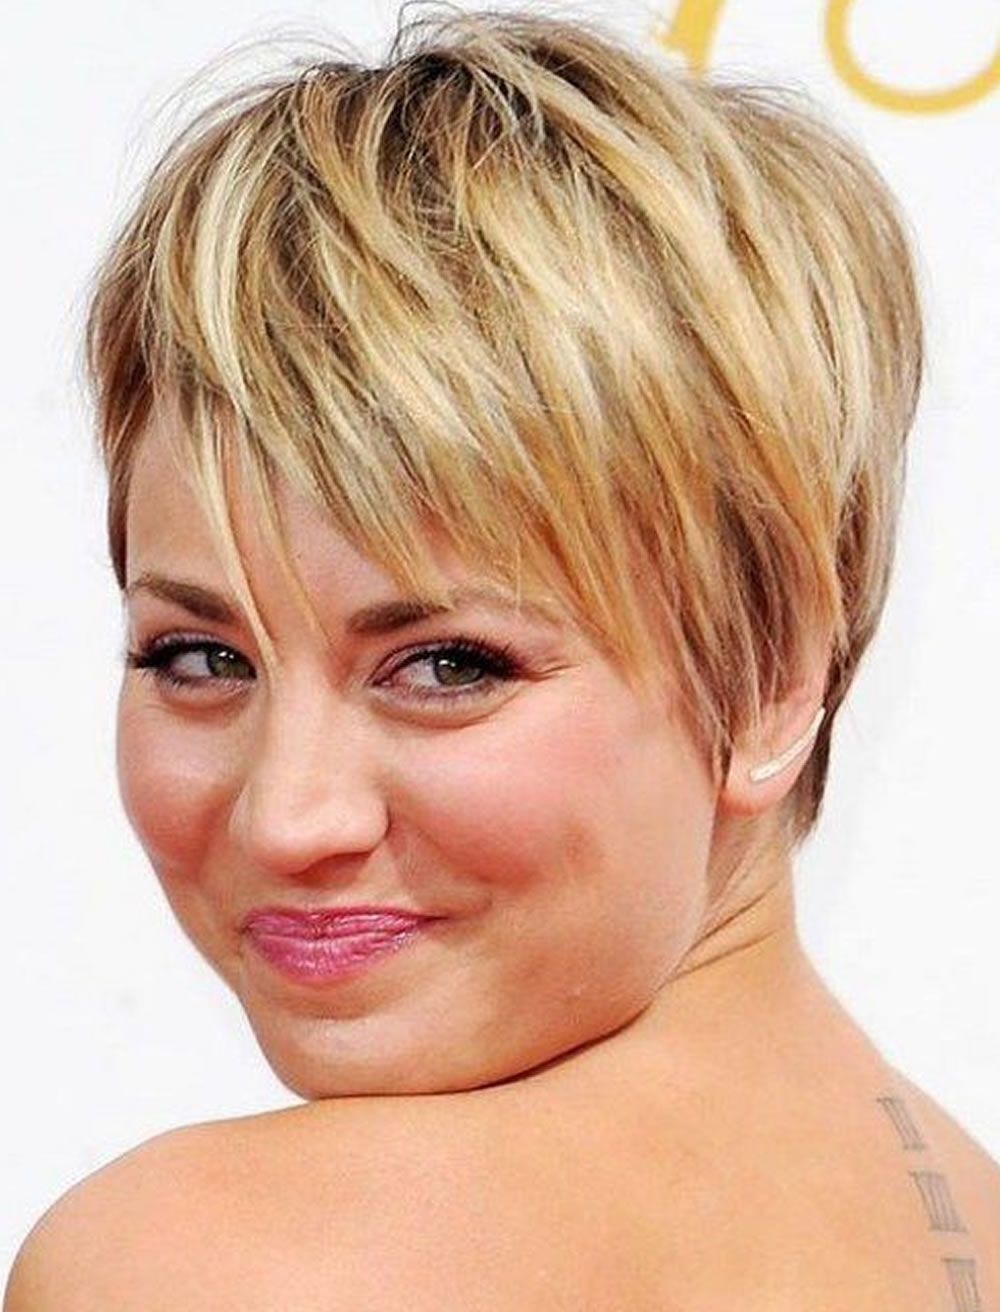 Short Haircuts For Round Face Thin Hair Ideas For 2018 | Page 2 Of 4 Intended For Recent Pixie Hairstyles For Round Face (View 11 of 15)